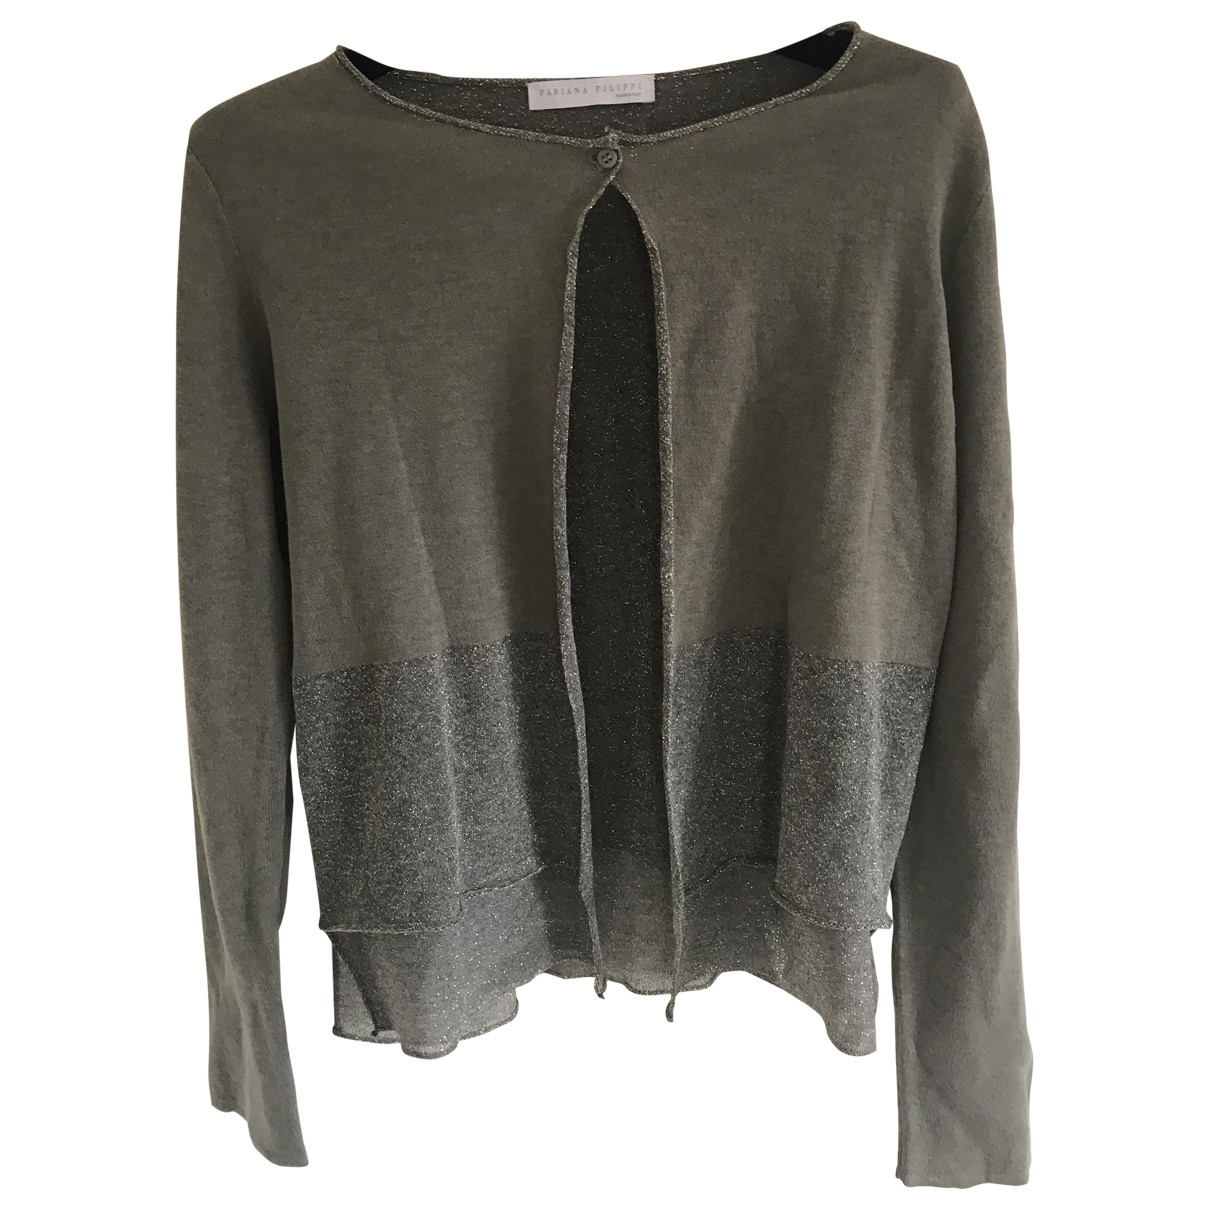 Fabiana Filippi \N Green Knitwear for Women 40 IT